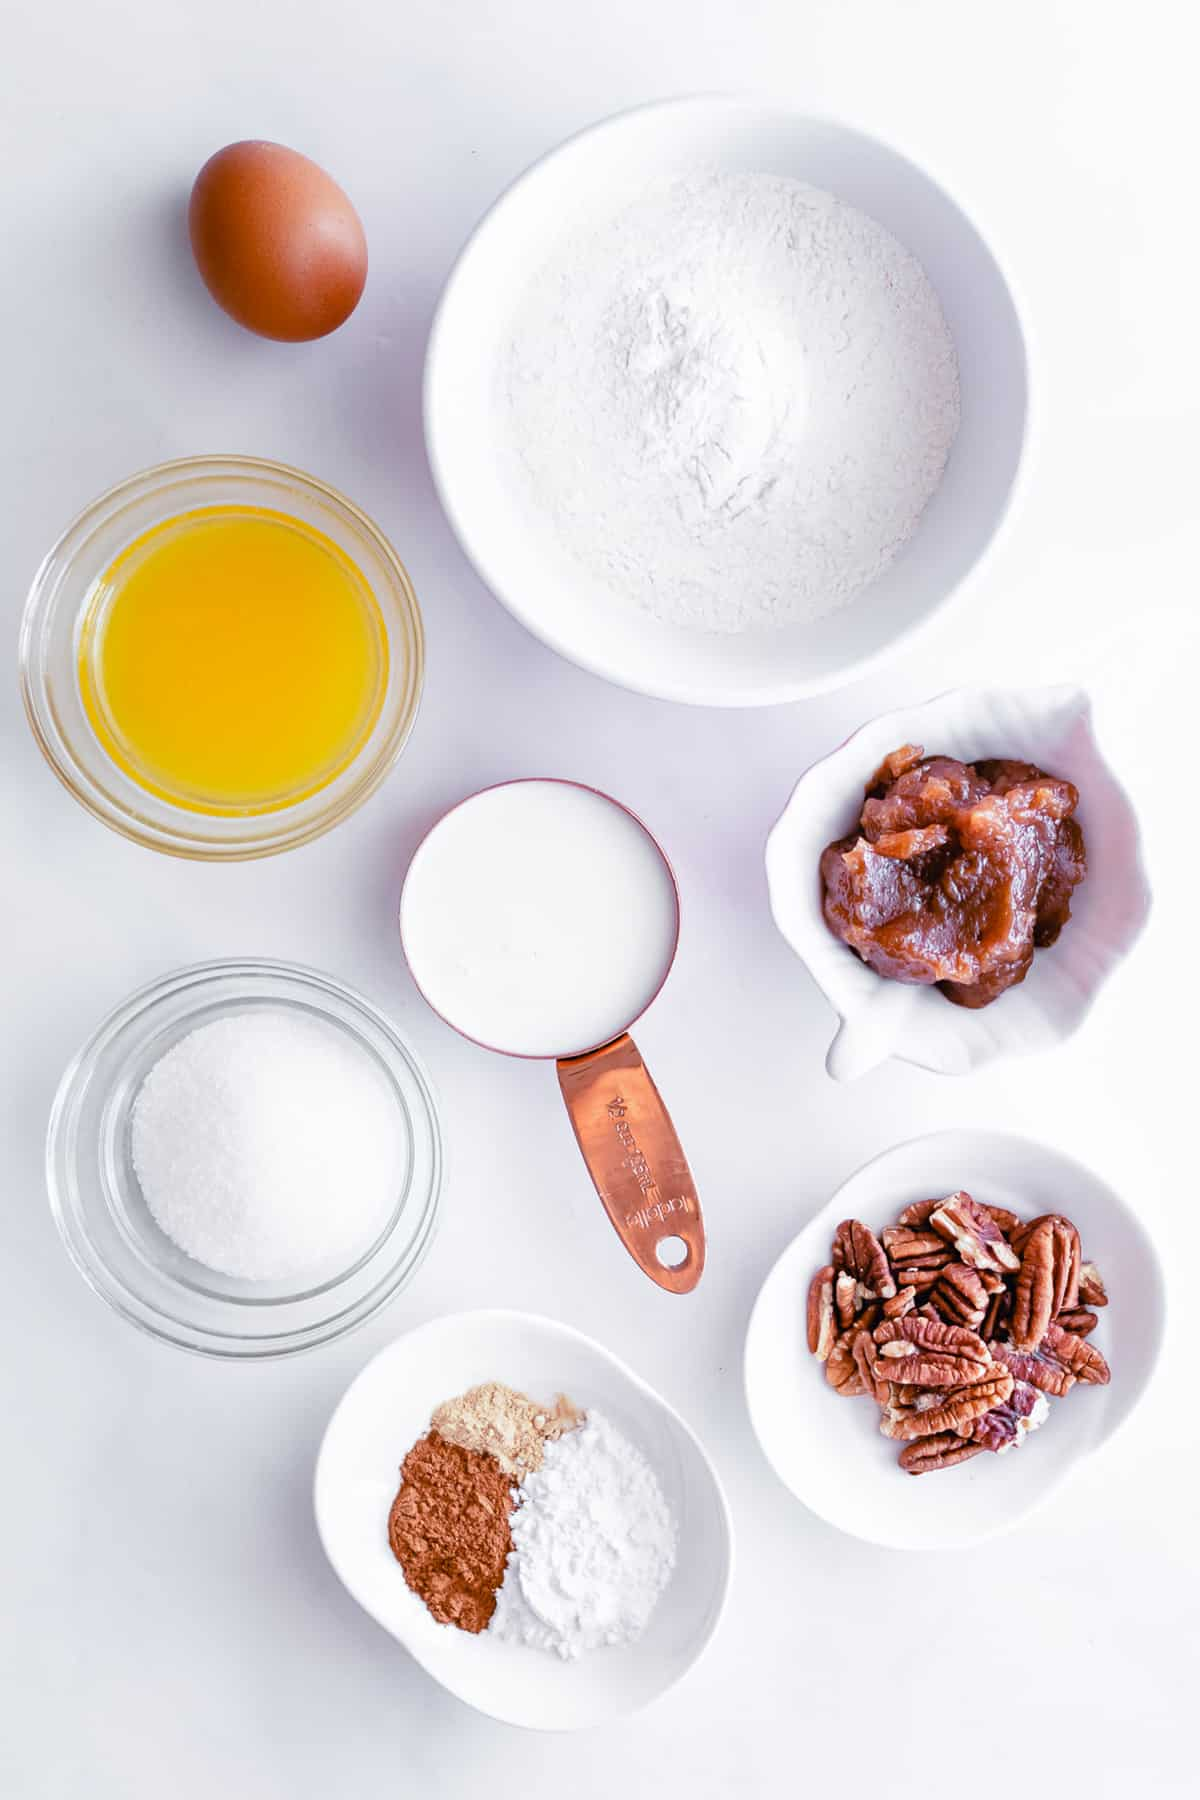 Overhead view of ingredients needed for recipe in small bowls.